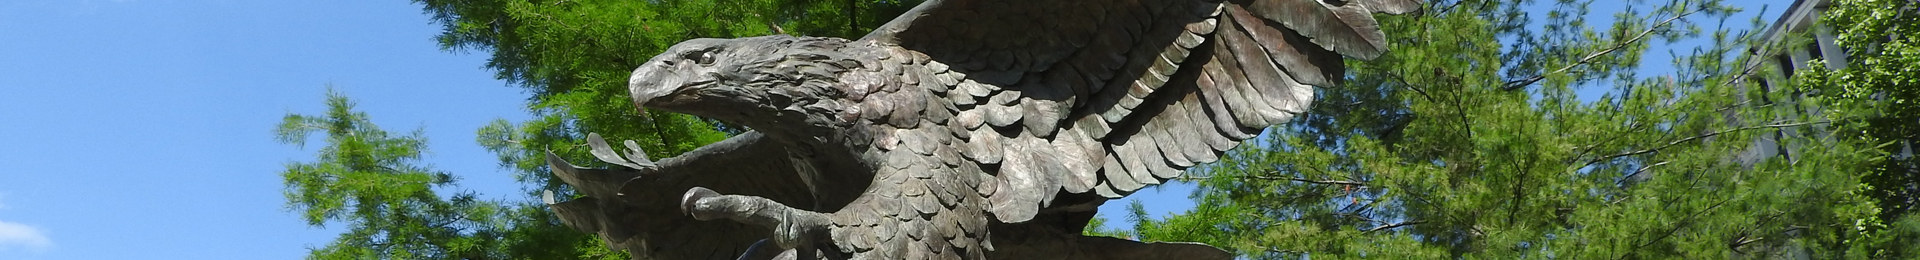 Photograph: Eagle statue outside law school.